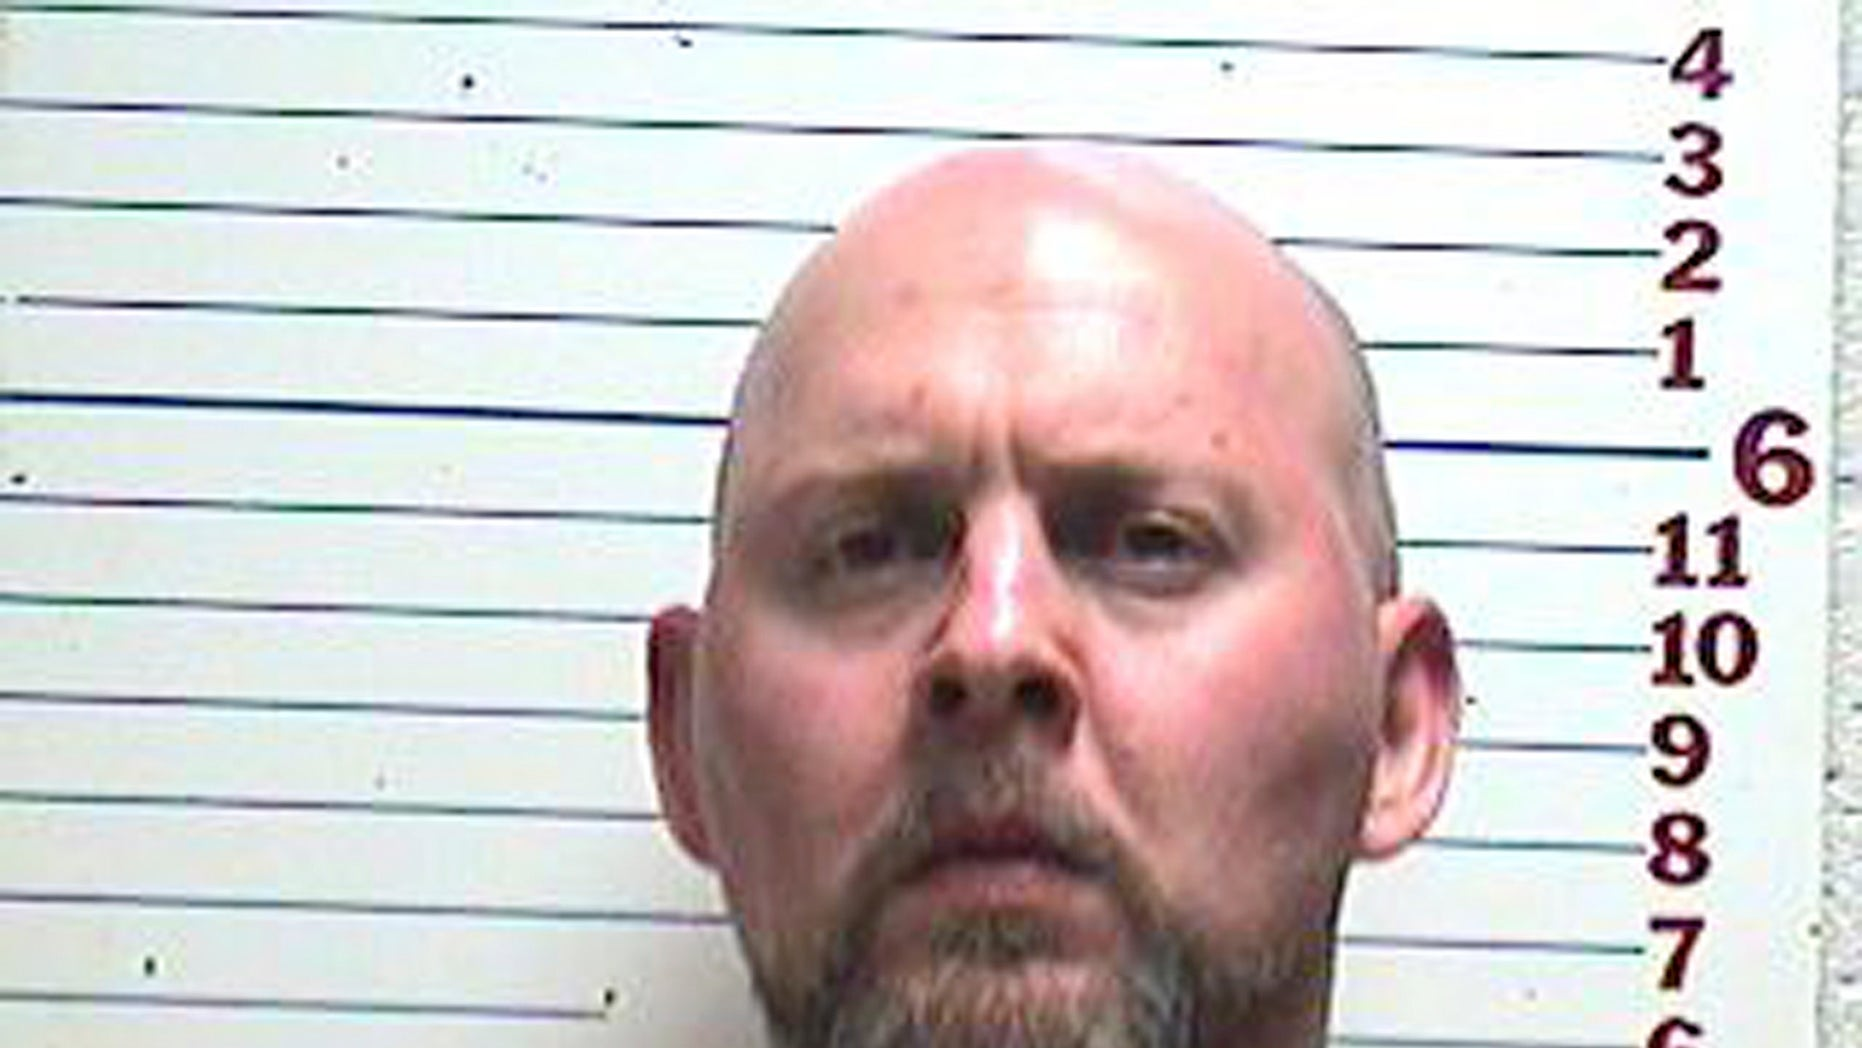 In this photo provided by the Comanche County Detention Center, David Lee Kemp is pictured in a booking photo dated April 26, 2013. Authorities in southwest Oklahoma say they've captured Kemp, a murder suspect who's been on the run since a brazen jail escape with eight other inmates in 1999. Kemp was the only inmate to elude capture after escaping the Comanche County jail on March 11, 1999. He was awaiting trial on two first-degree murder counts in the killings of his ex-wife and another man. (AP Photo/Comanche County Detention Center)